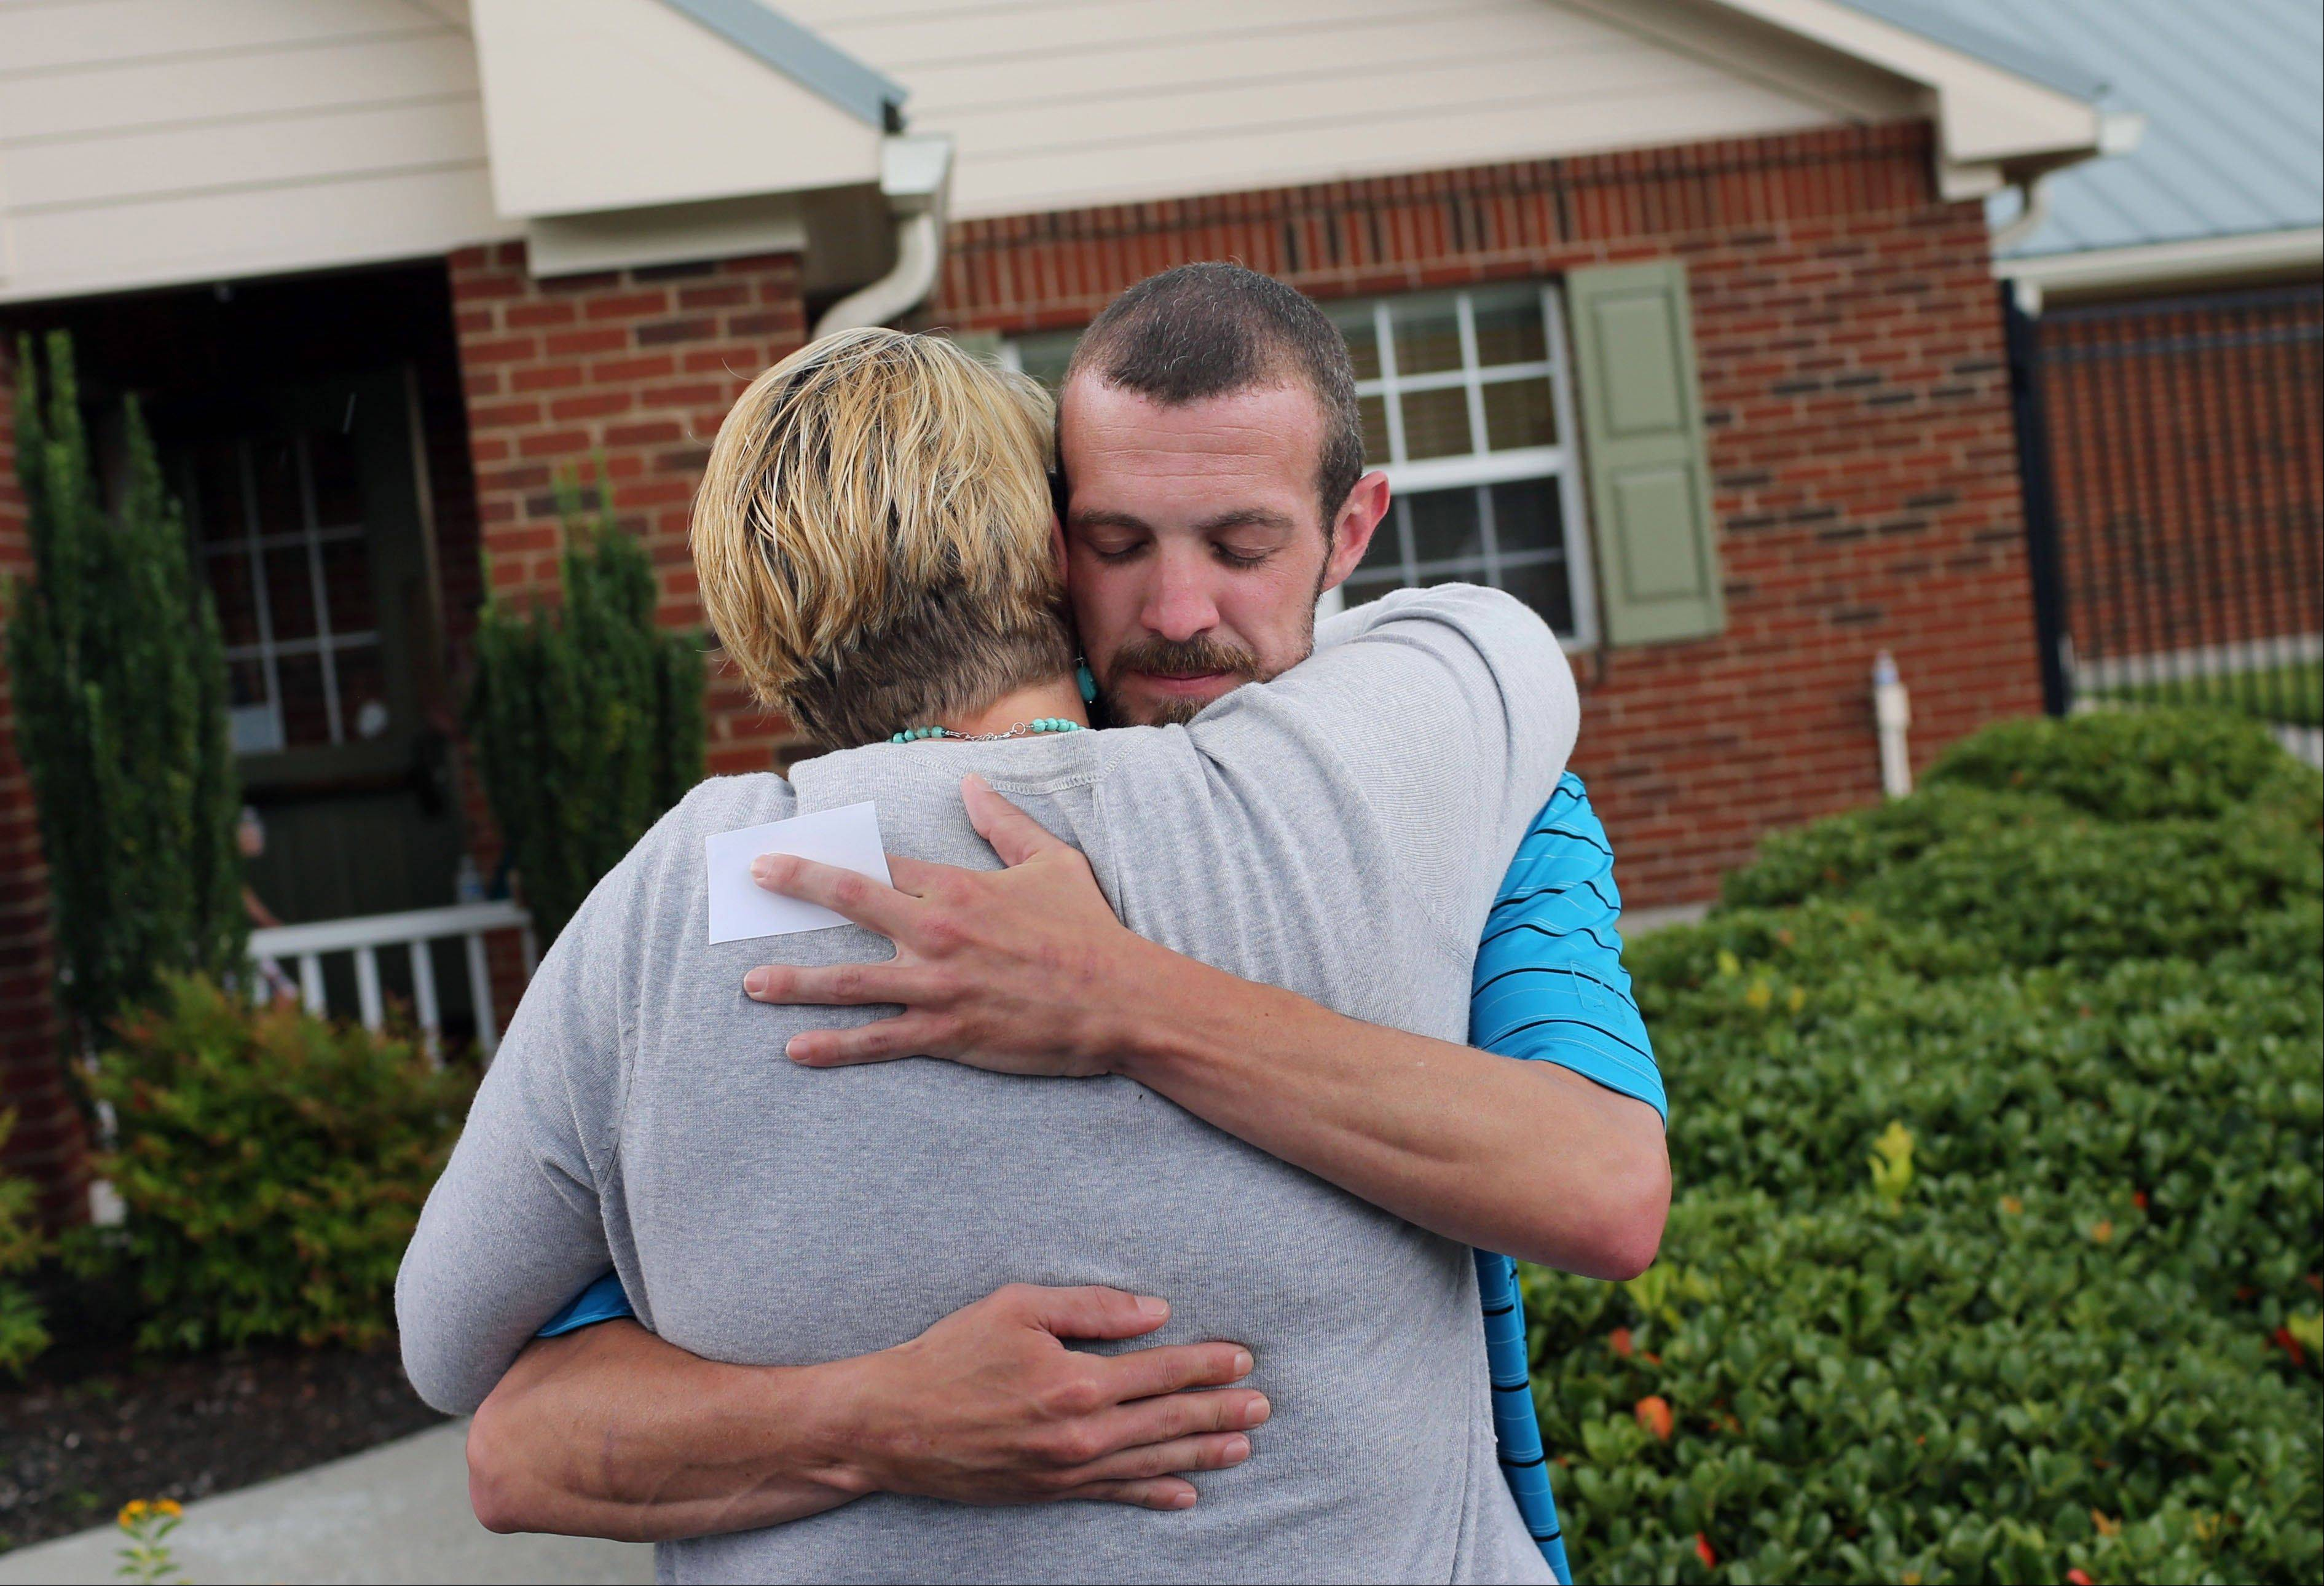 Brendon Mackey's father Bryan Mackey hugs his cousin, Heather Melton, after students of Primrose School of Swift Creek released balloons during a memorial for Brendon in Midlothian, Va.